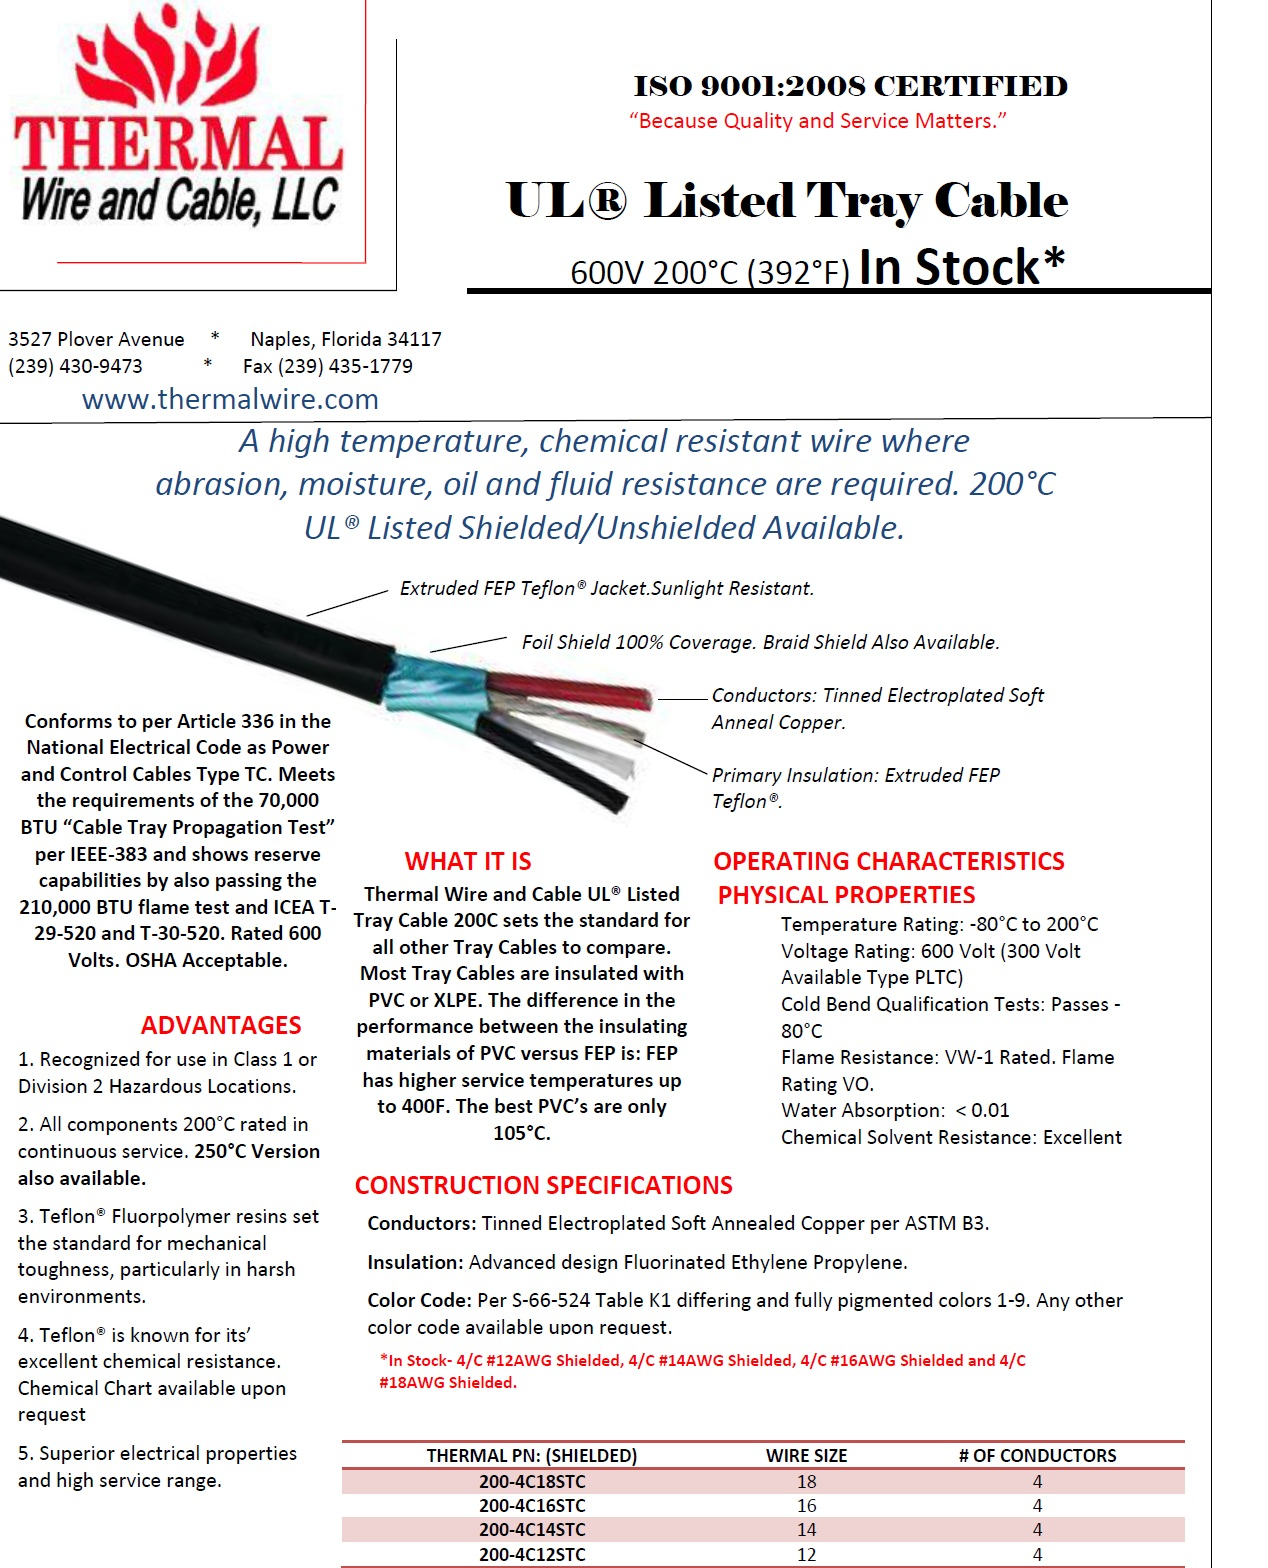 Thermal Wire & Cable Corp. Naples, Florida, FL 34117-8408